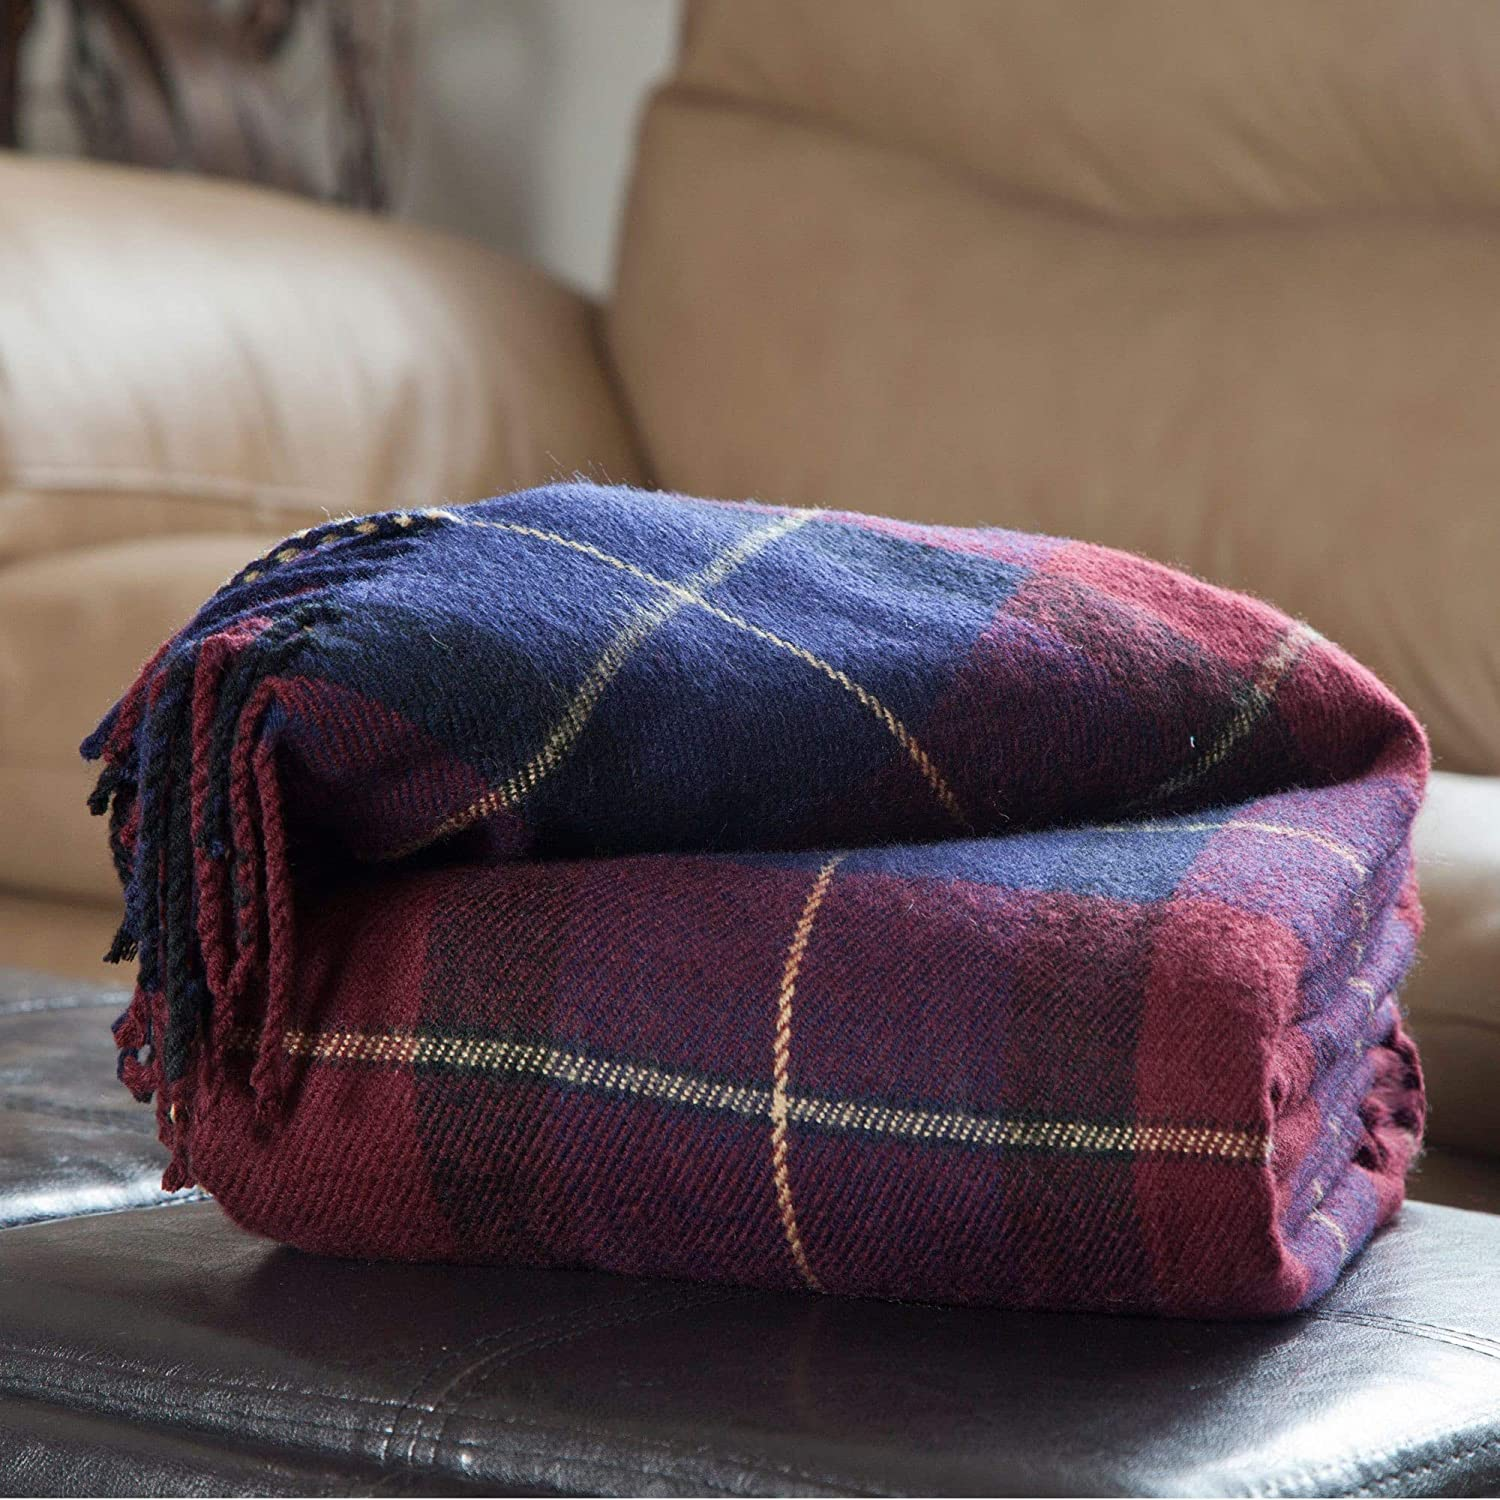 Cashmere Like Throw Blanket Blue Red Plaid Modern Contemporary Victorian Acrylic